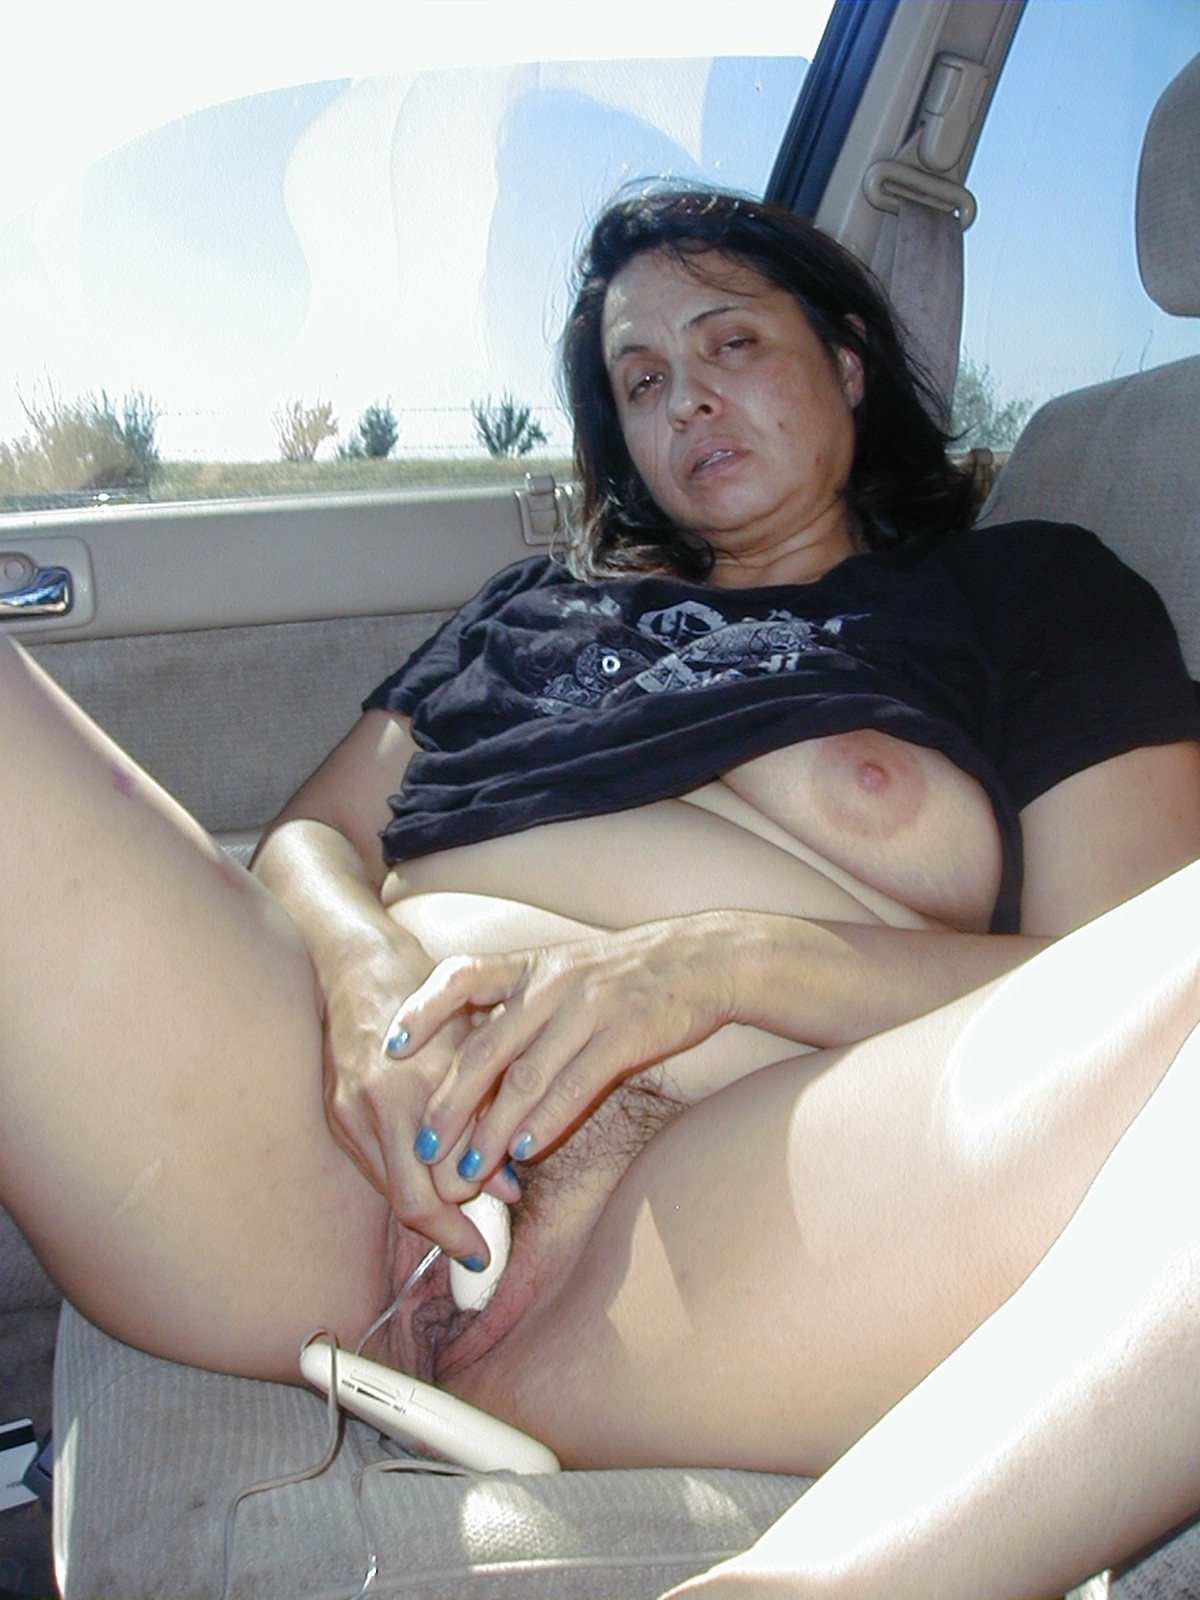 Car and nude women